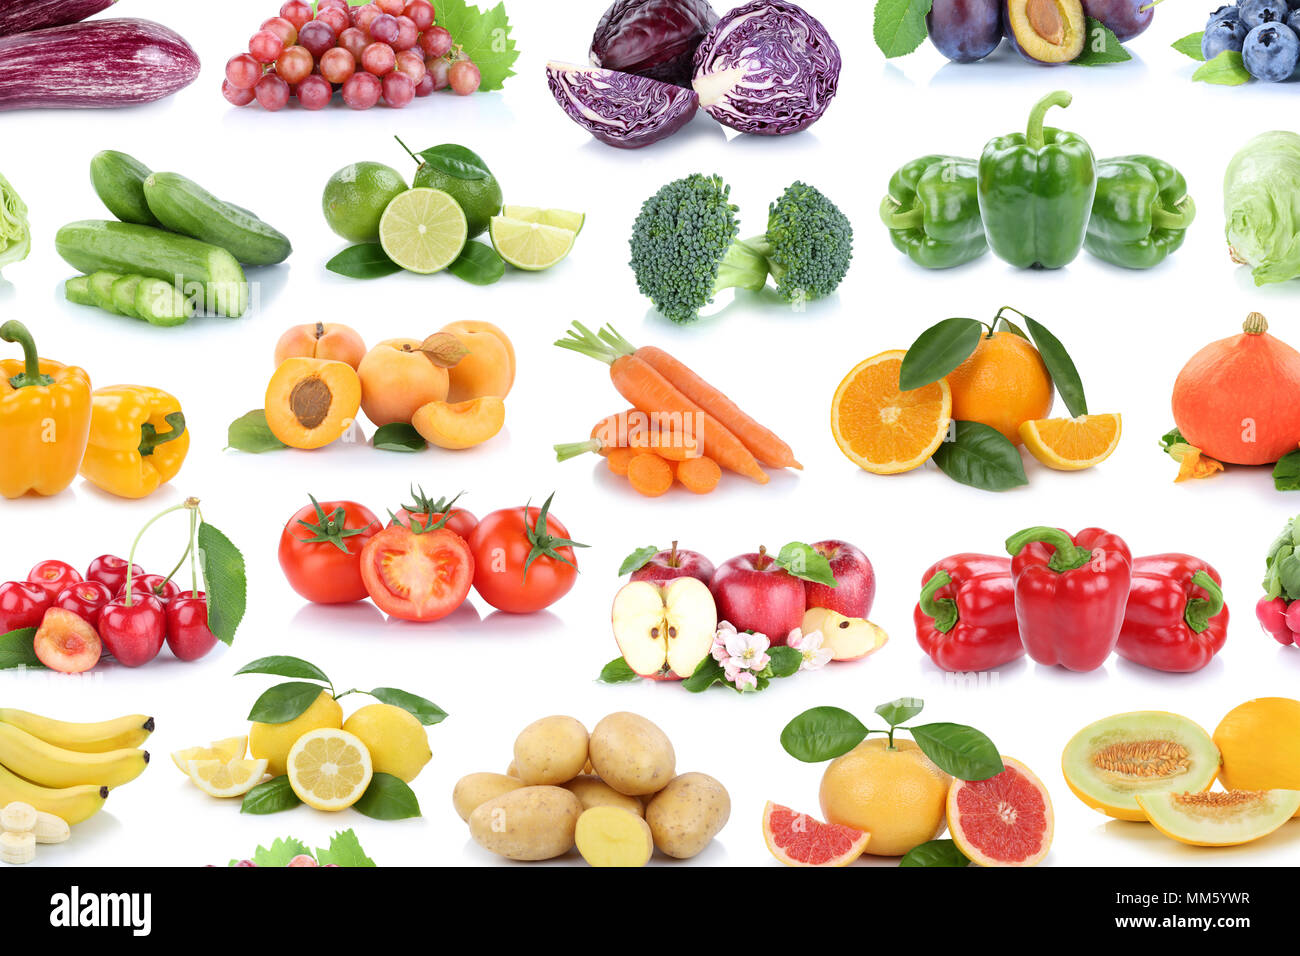 Fruits and vegetables collection background isolated apples lemons oranges berries lettuce colors tomatoes fruit on a white background - Stock Image